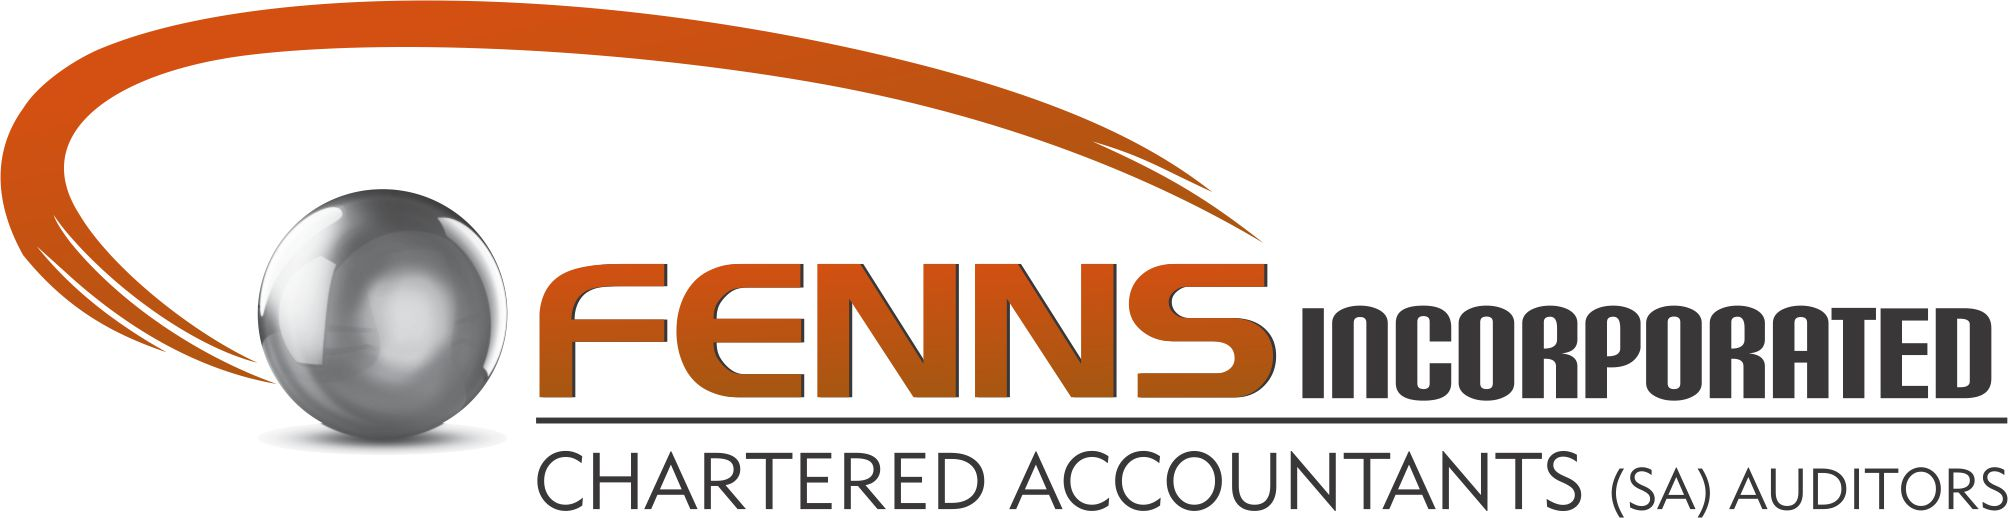 Fenns Incorporated